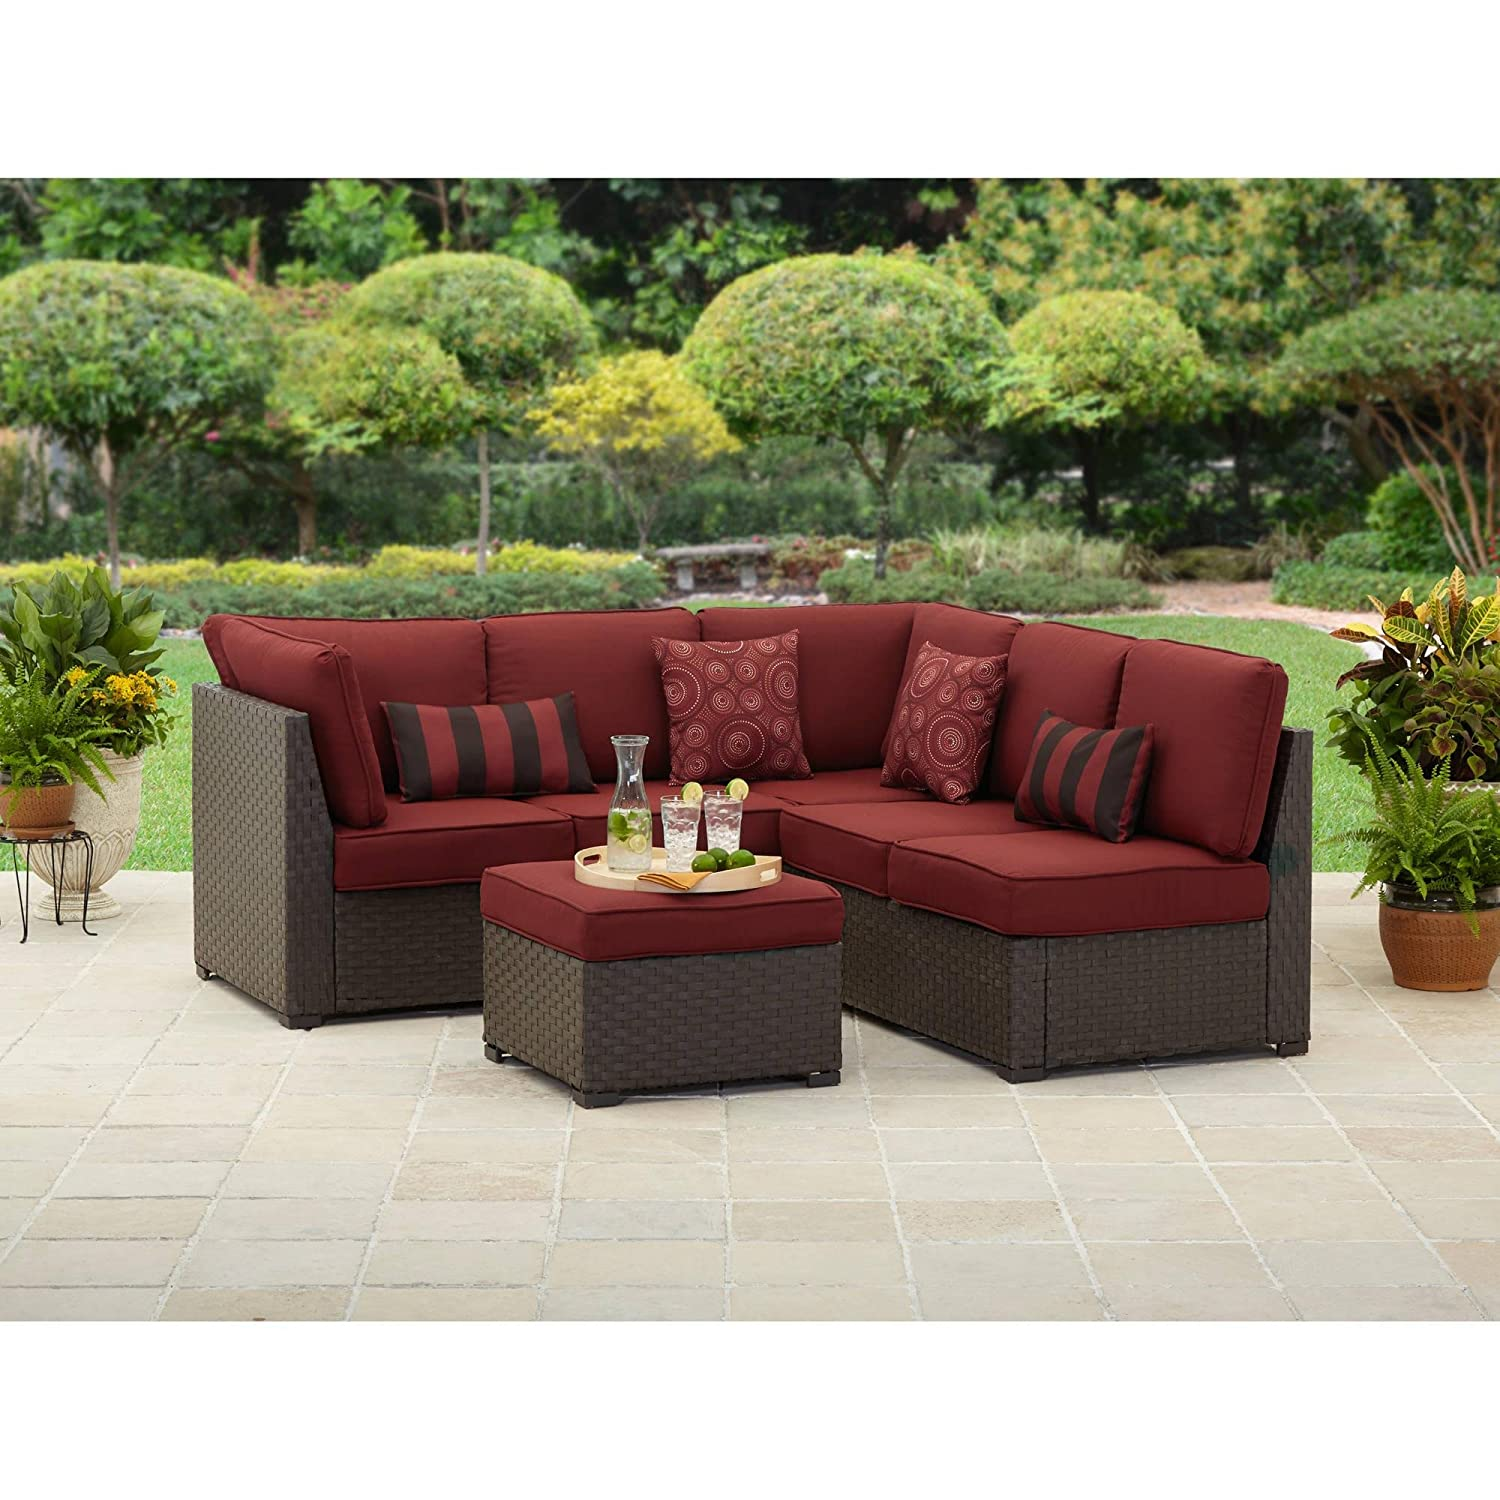 Amazon.com : Rush Valley 3-piece Outdoor Sectional Sofa Set, Red, Seats 5 :  Outdoor And Patio Furniture Sets : Garden & Outdoor - Amazon.com : Rush Valley 3-piece Outdoor Sectional Sofa Set, Red